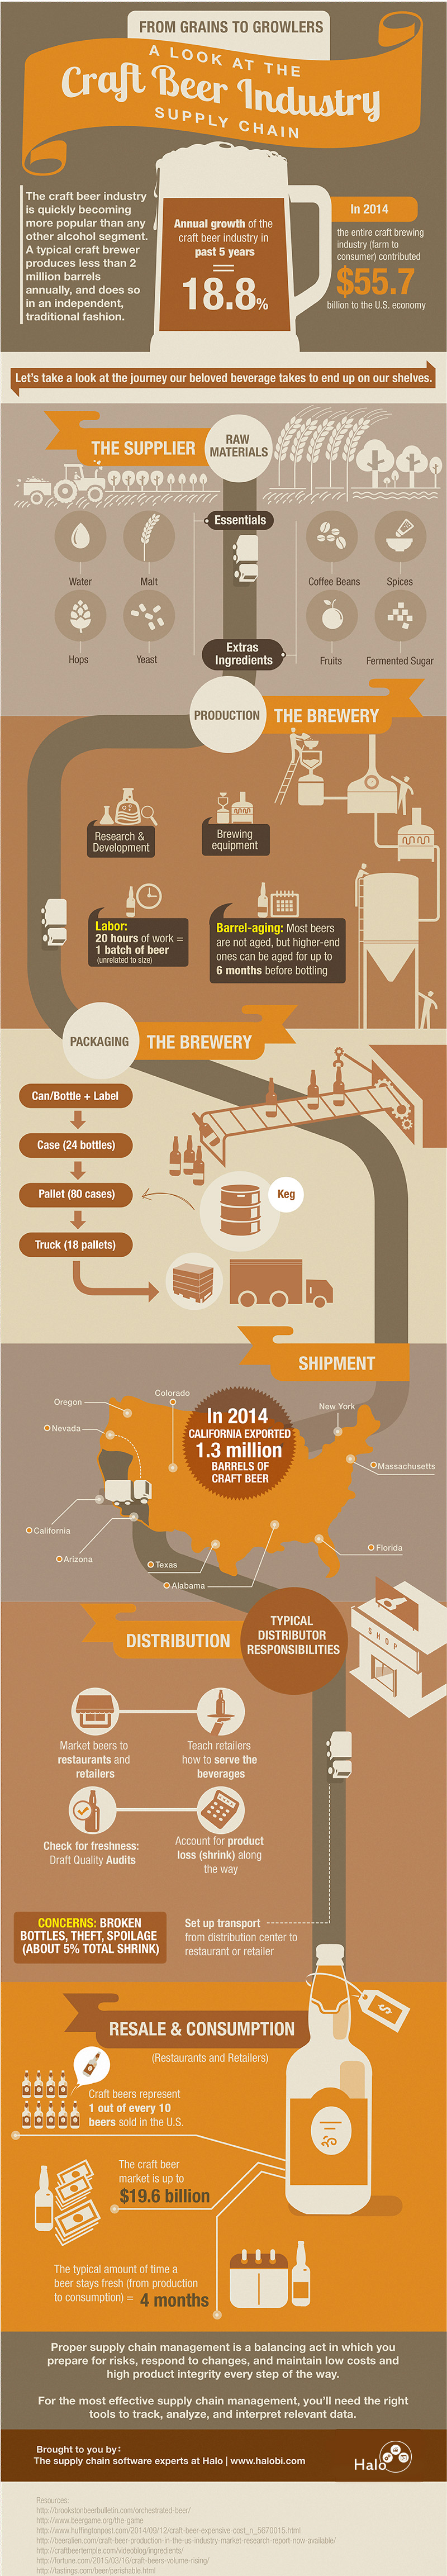 beer-supply-chain